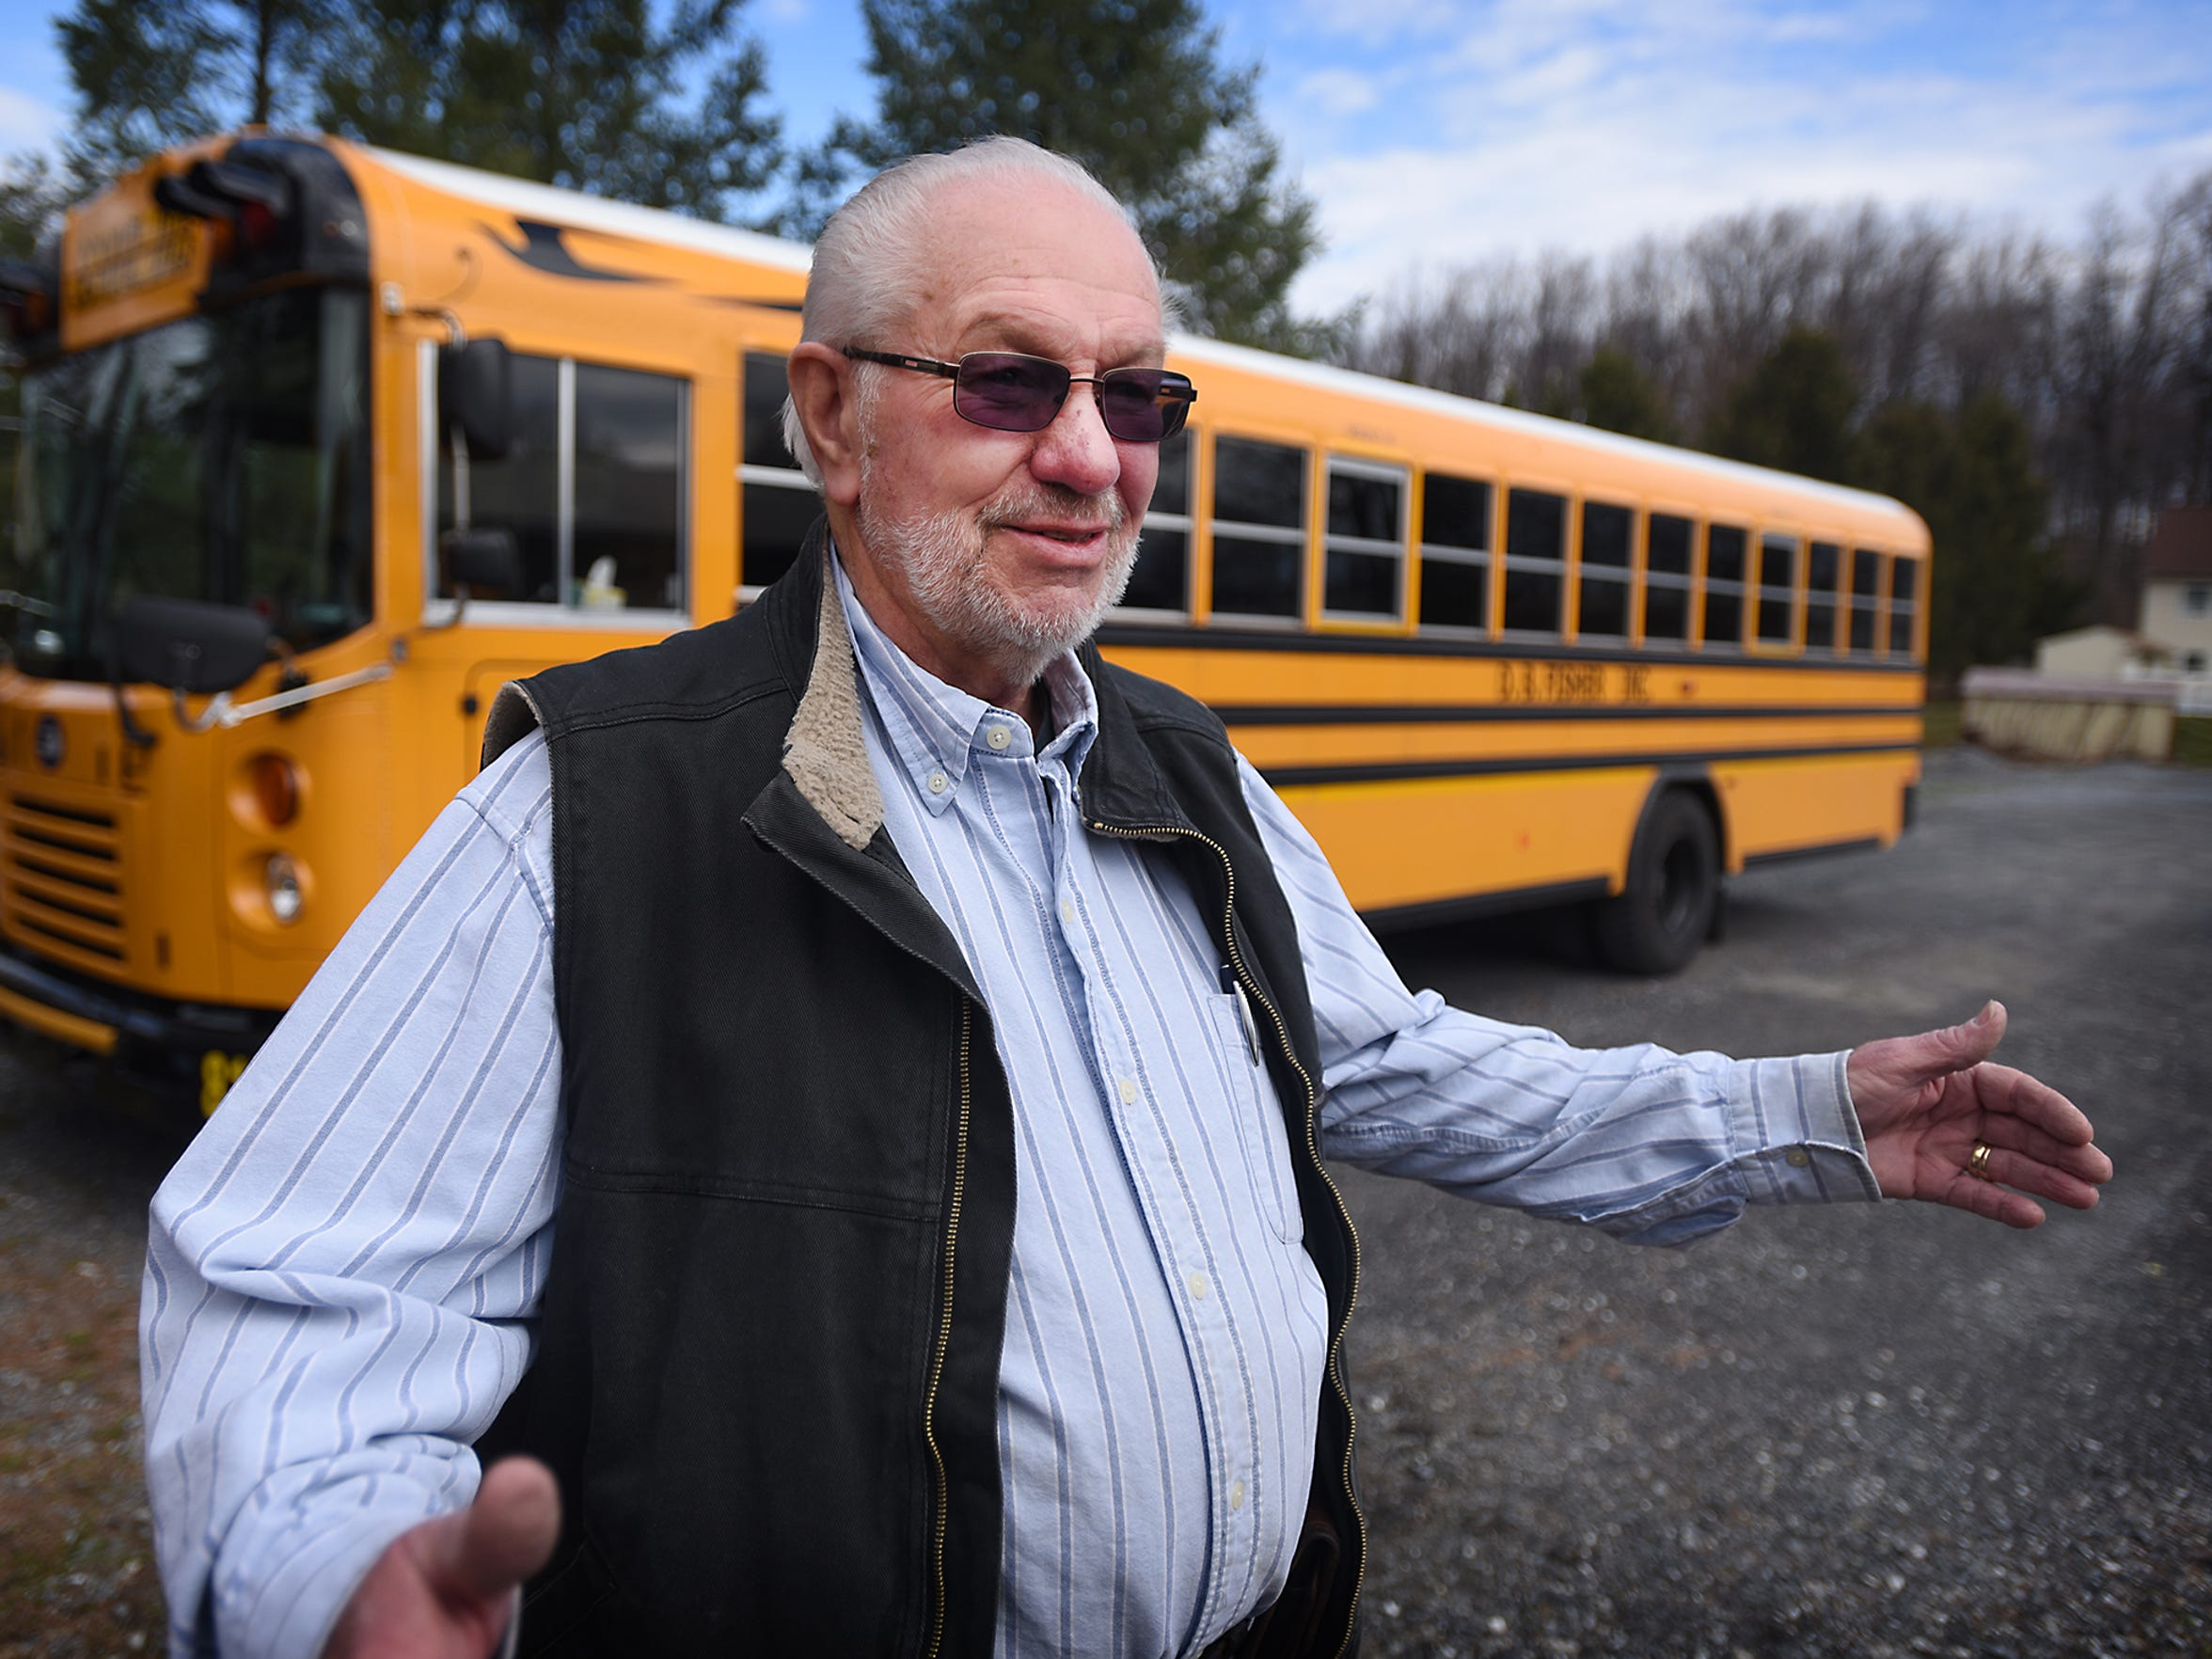 Barry Fisher, president of the school bus division for D.B. Fisher bus company, talks on March 30 about operating school student transportation for Annville-Cleona, Northern Lebanon, and Lebanon school districts.